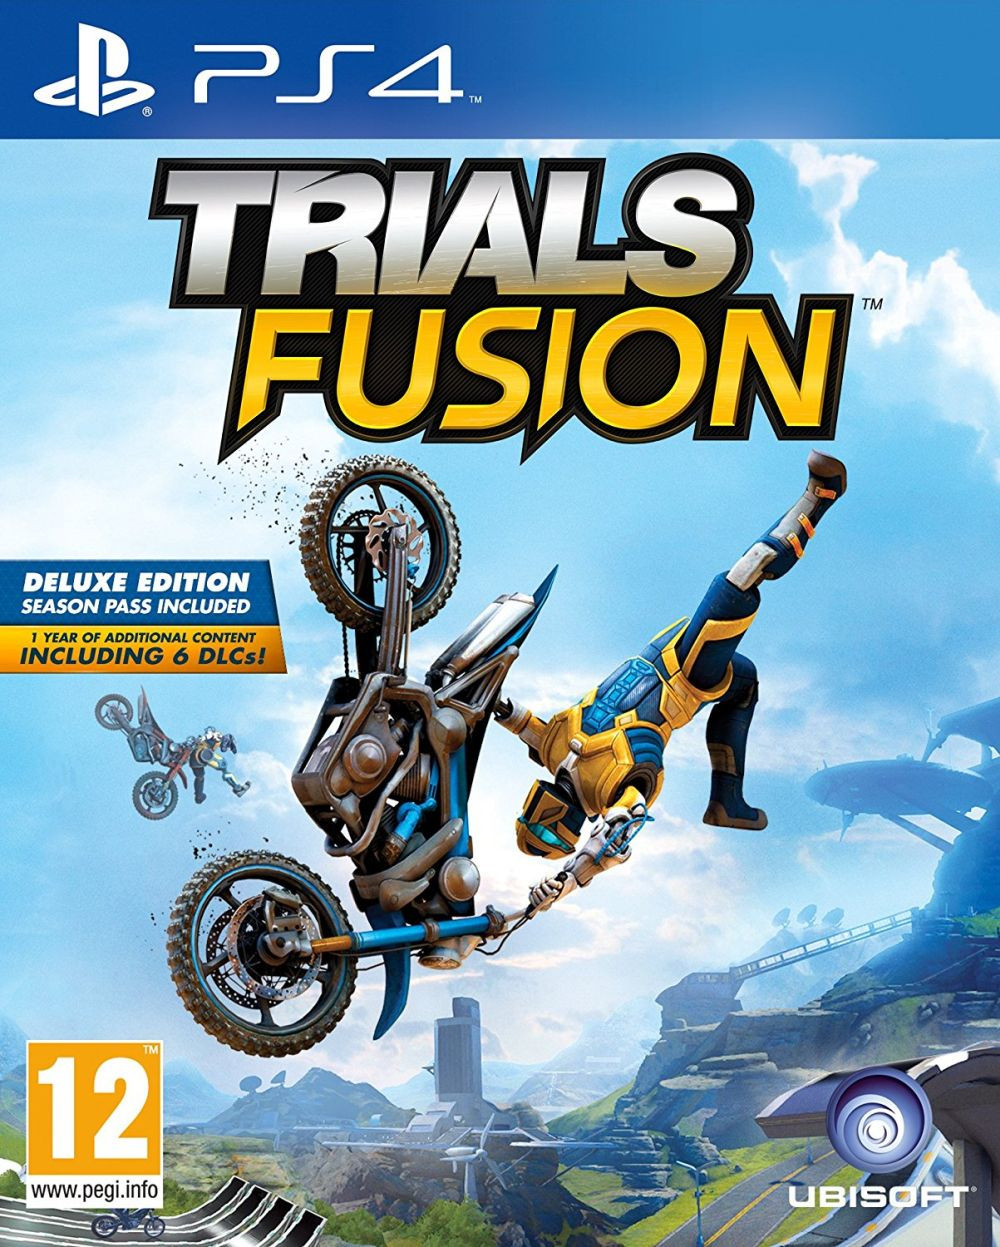 PS4 Trials Fusion Deluxe Edition